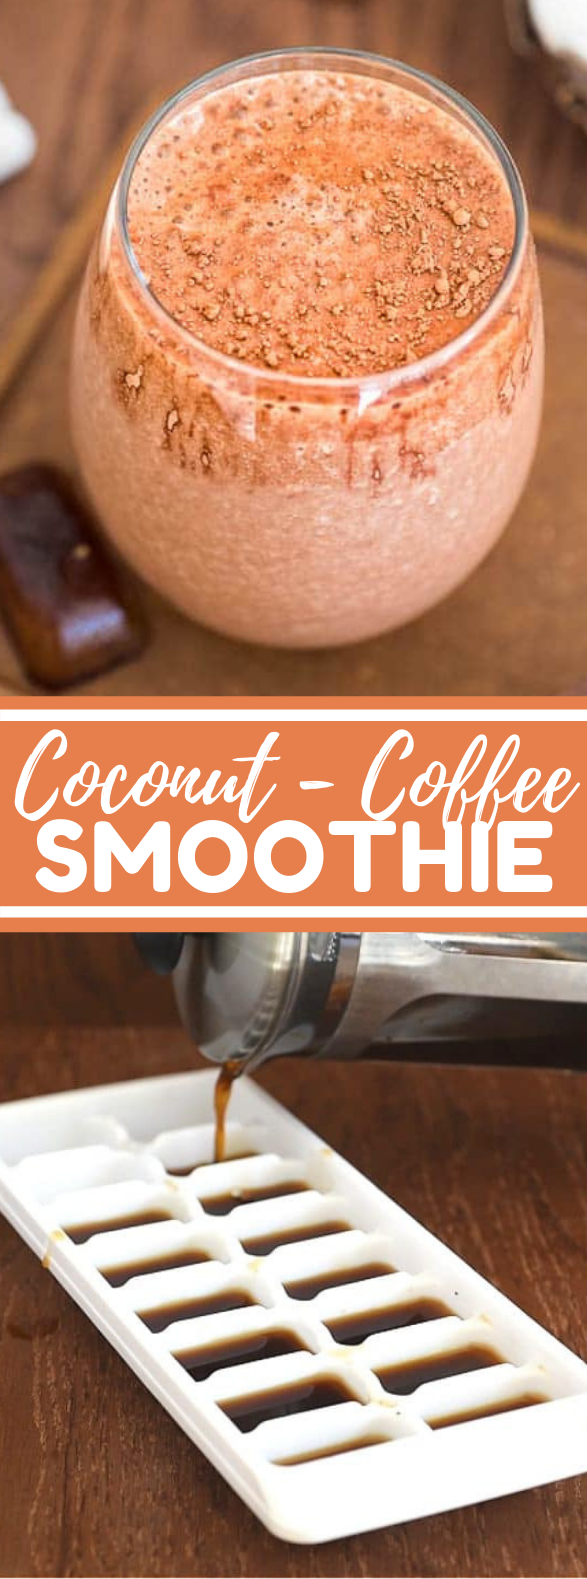 COCONUT COFFEE SMOOTHIE #drinks #healthydrink